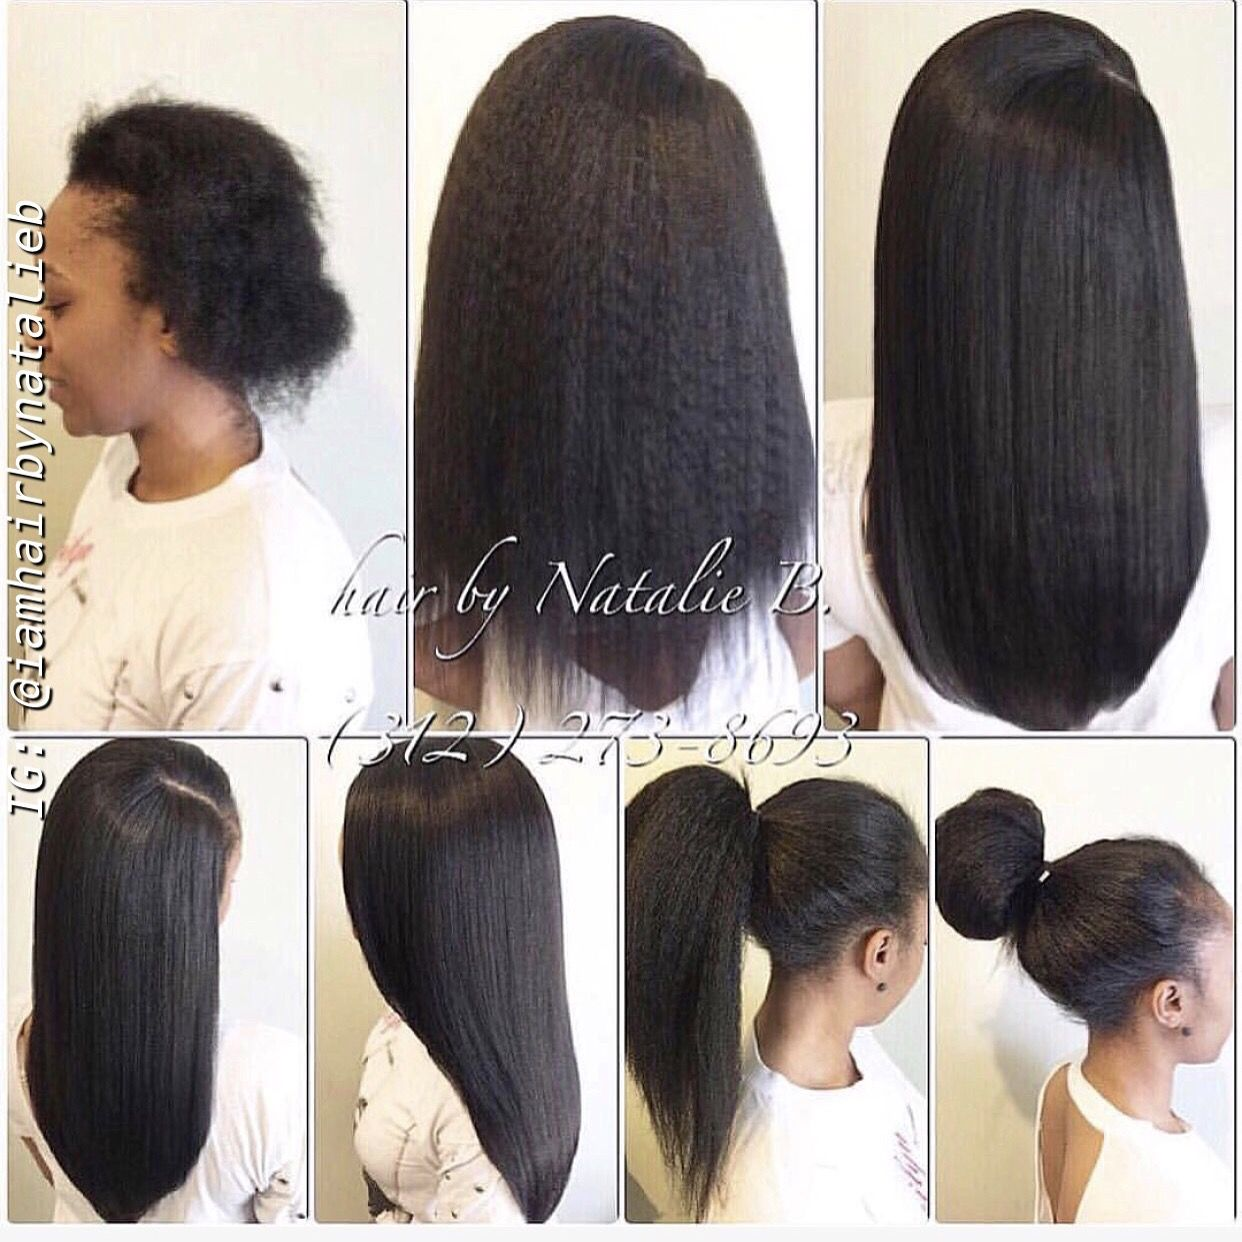 Check Out This Incredibly Natural Looking Sew In Hair Weave That I